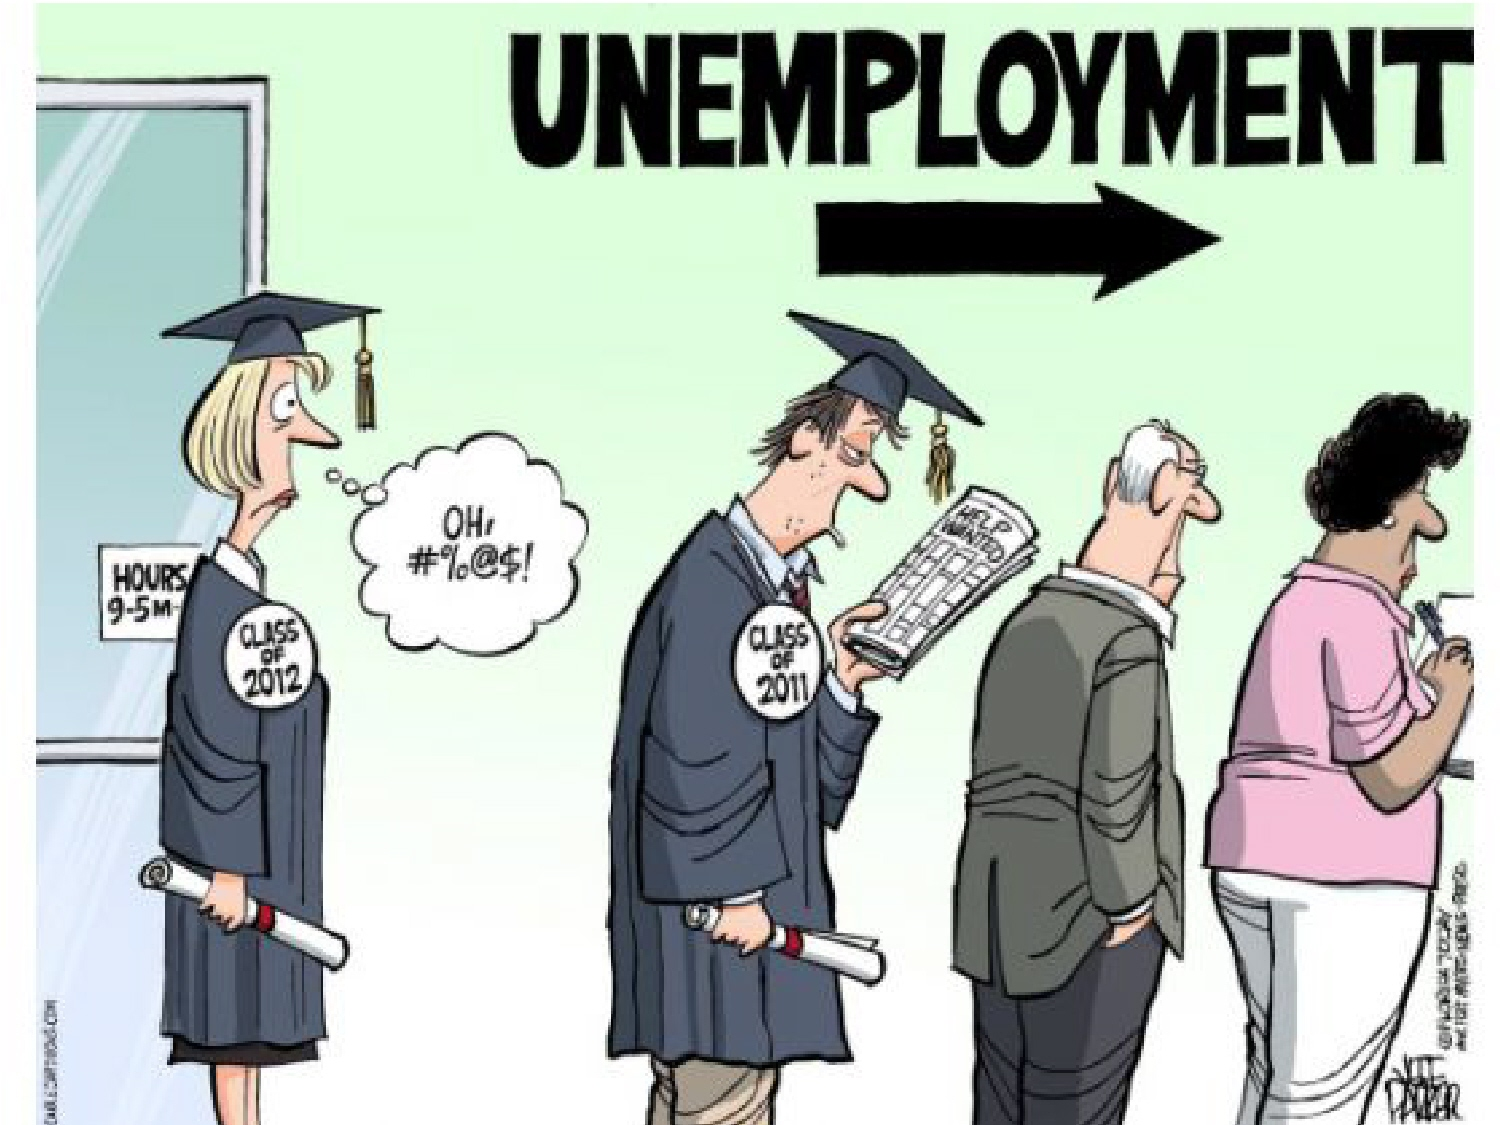 http://pearlsofprofundity.files.wordpress.com/2012/05/unemployment-line-2012.jpg